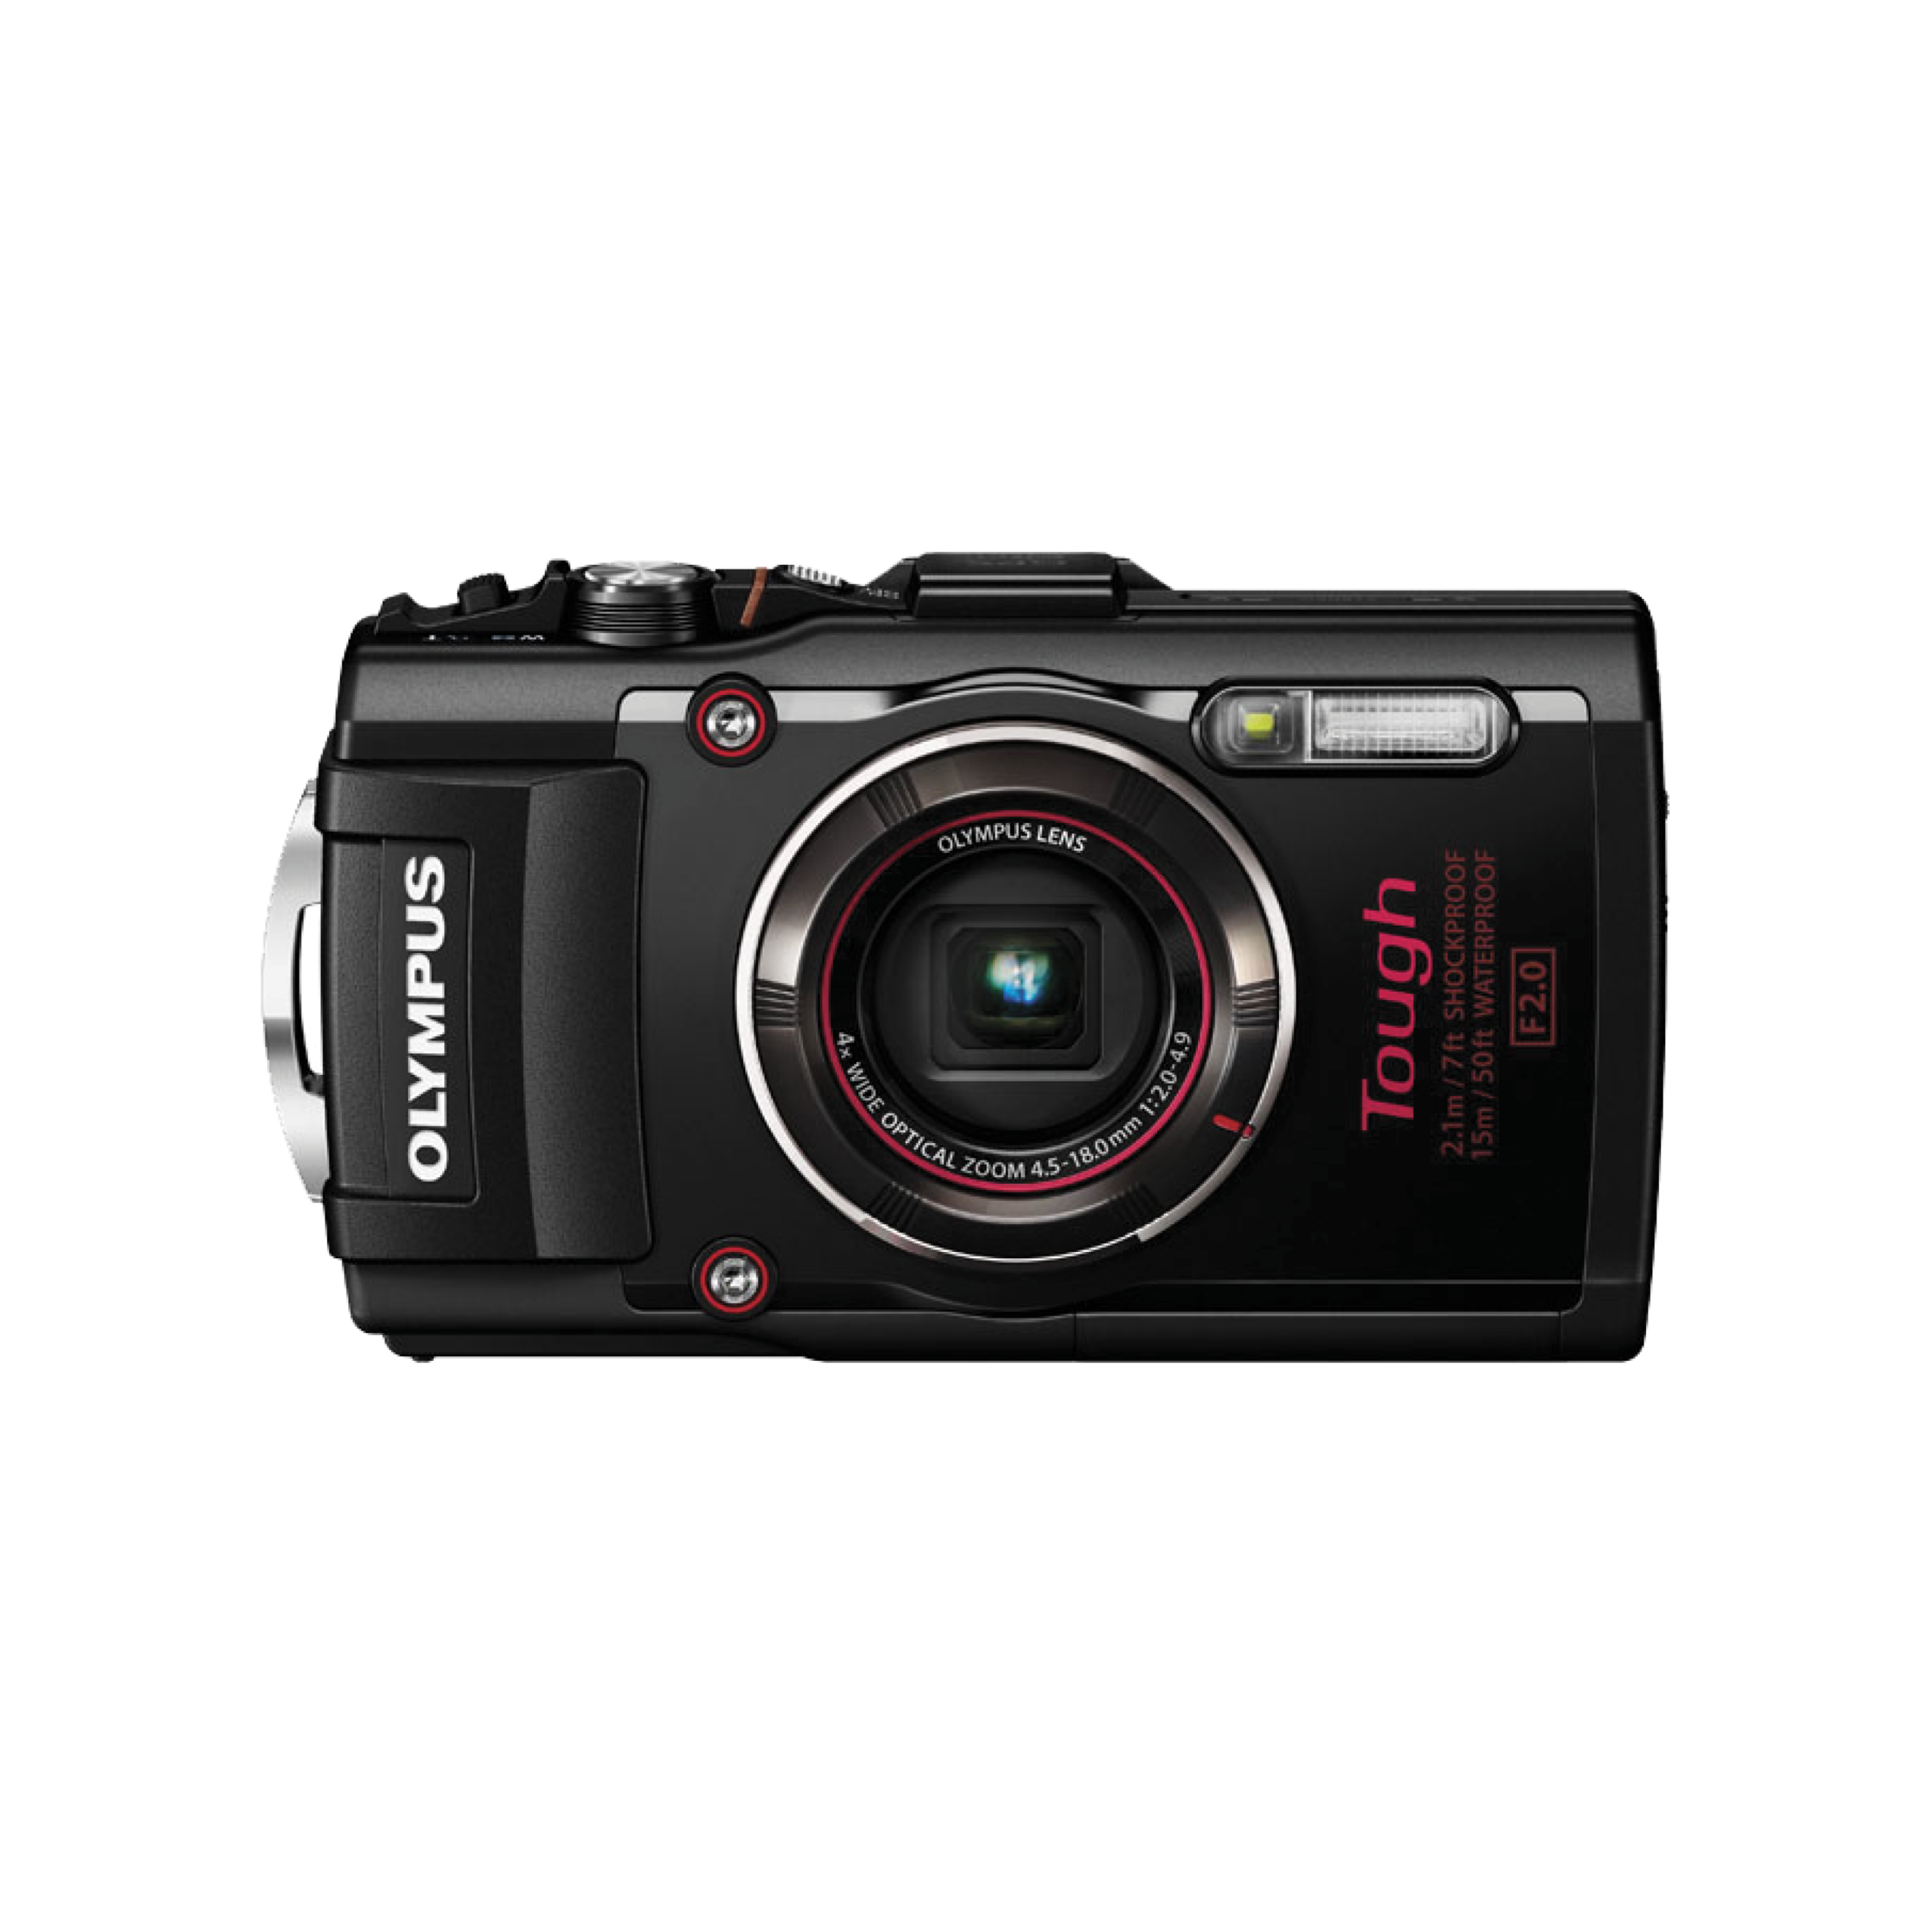 olympus tg-5 - waterproof digital camera